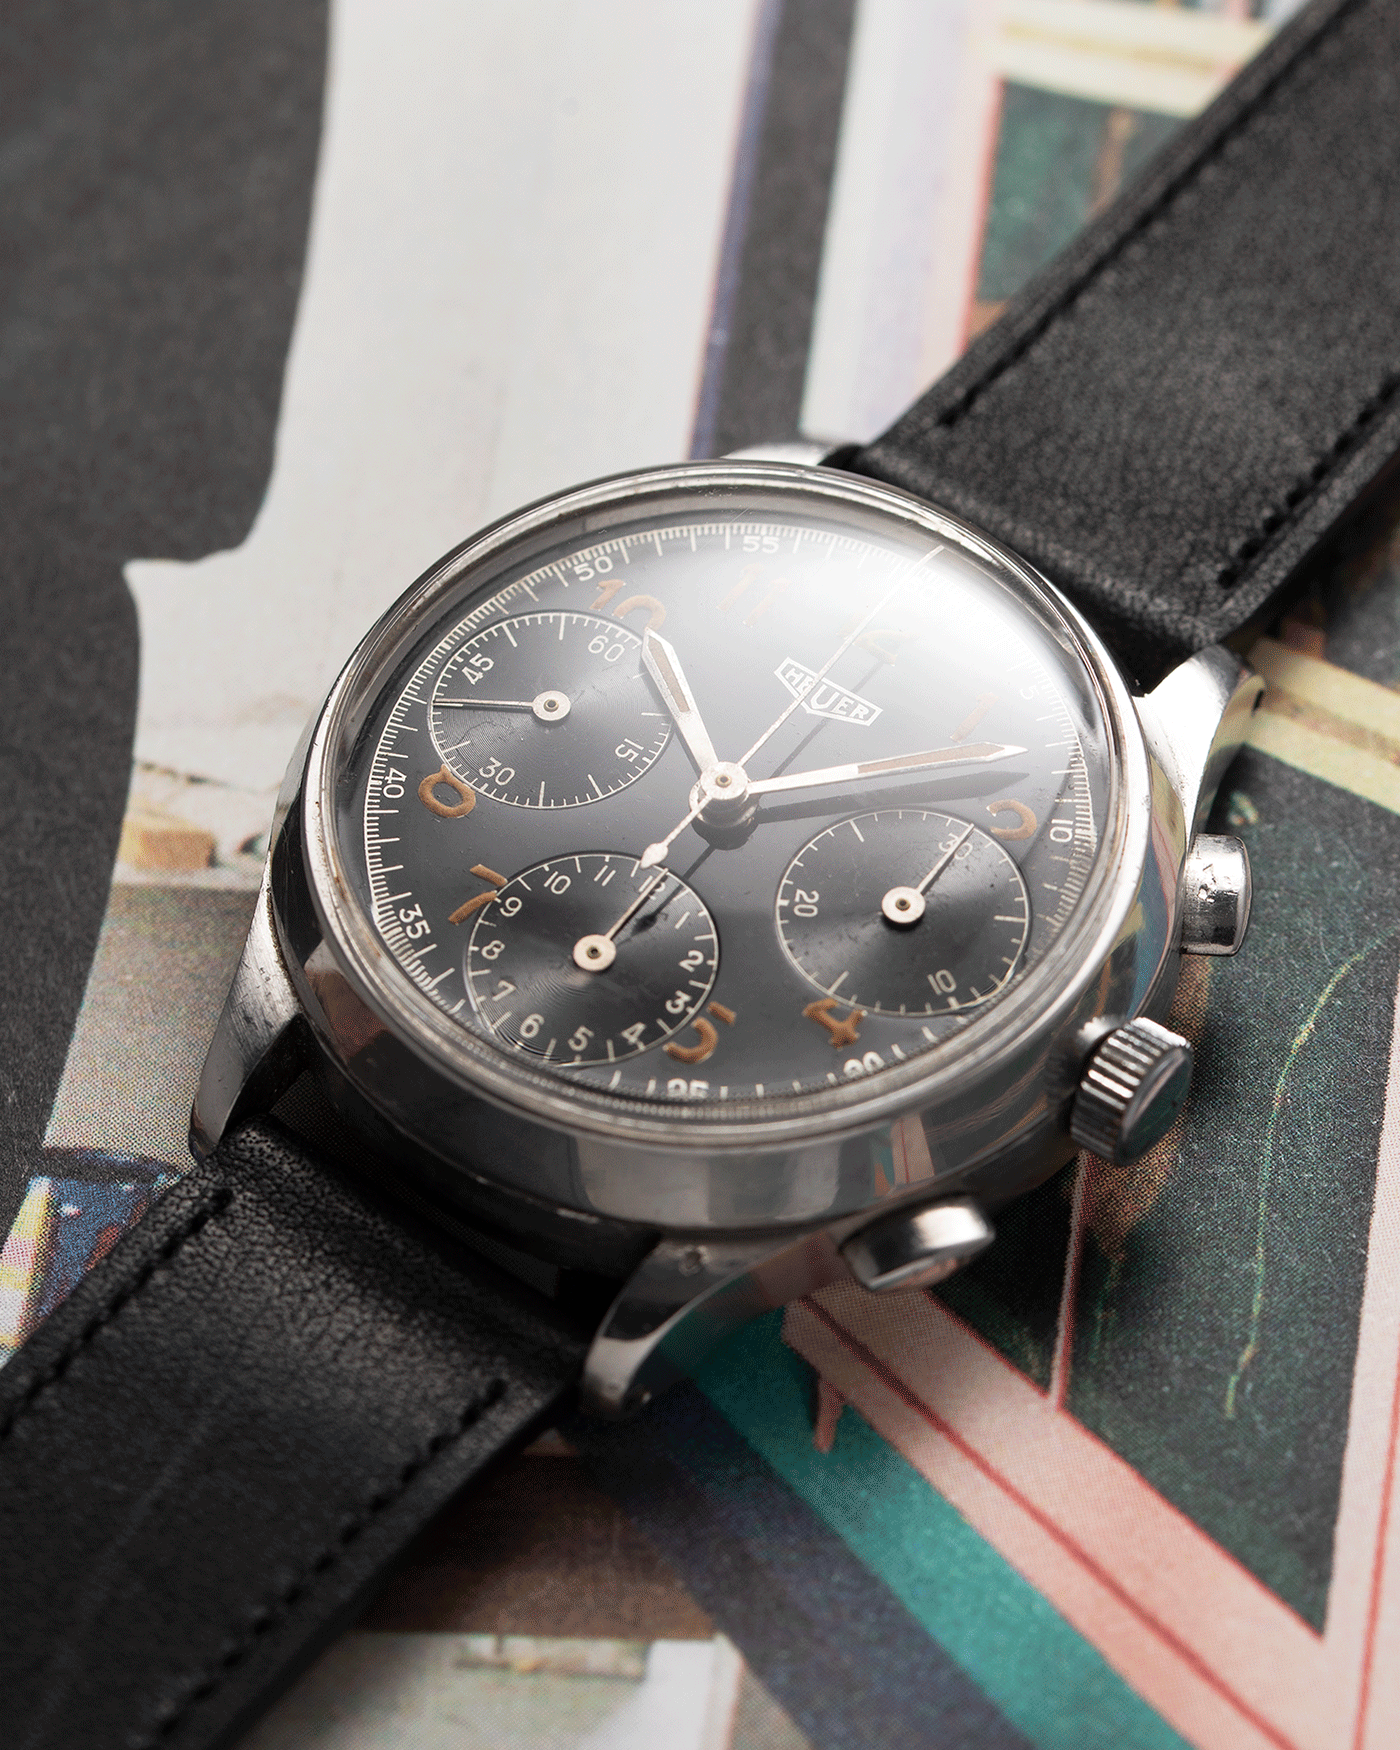 Brand: Heuer Year: 1940's Reference Number: 345 Material: Stainless Steel Movement: Valjoux 71 Case Diameter: 36mm Lug Width: 18mm Bracelet/Strap: Nostime Black Calf